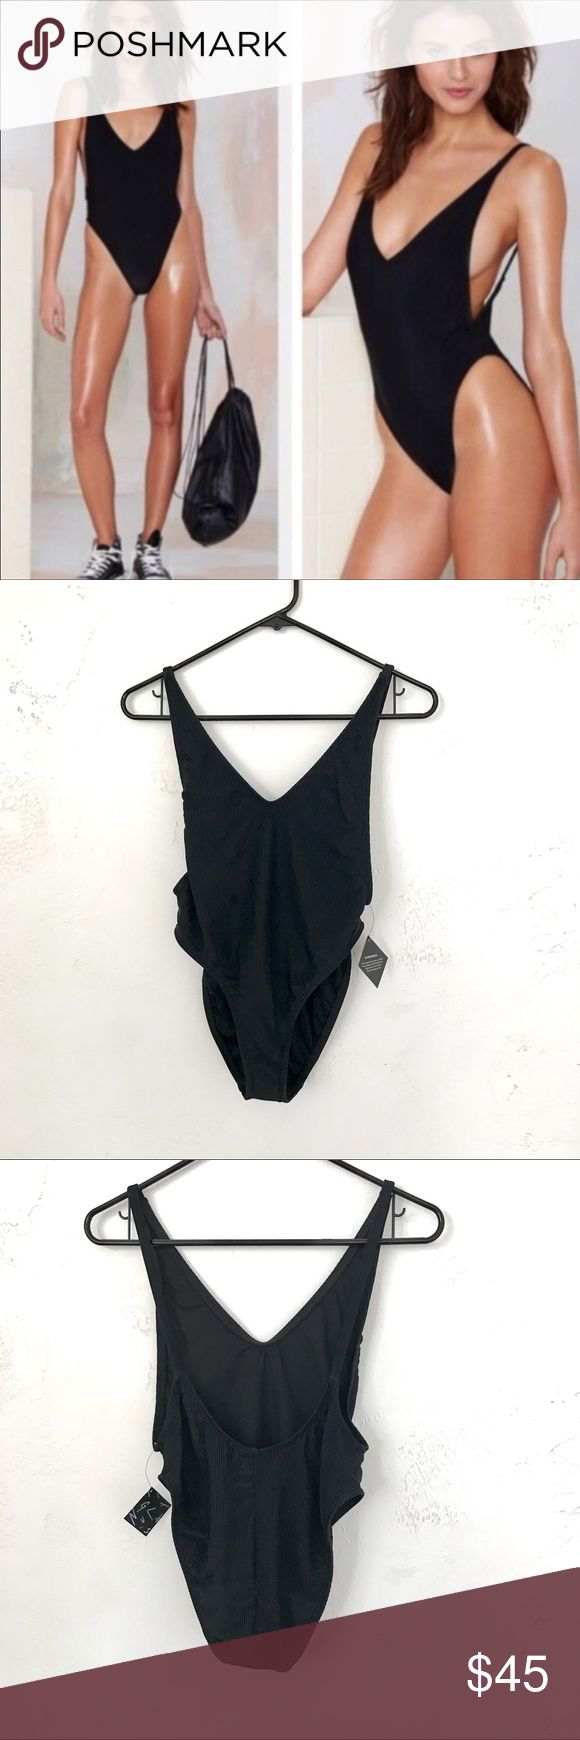 NastyGal Alina Black One Piece Brand new with tags. Such a sexy suit I just need a bigger size! Fabric is robbed and very stretchy! Beautiful scoop back and plunging sides for optimal side boob. This is a 2 and it's definitely a 2! Would recommend for someone an XS/S. At the moment im more of a S/M and it's too small. I checked it out and it has a small snag on the front which is pretty small and unnoticeable and not running but I believe it happened in the shipping process. This is…